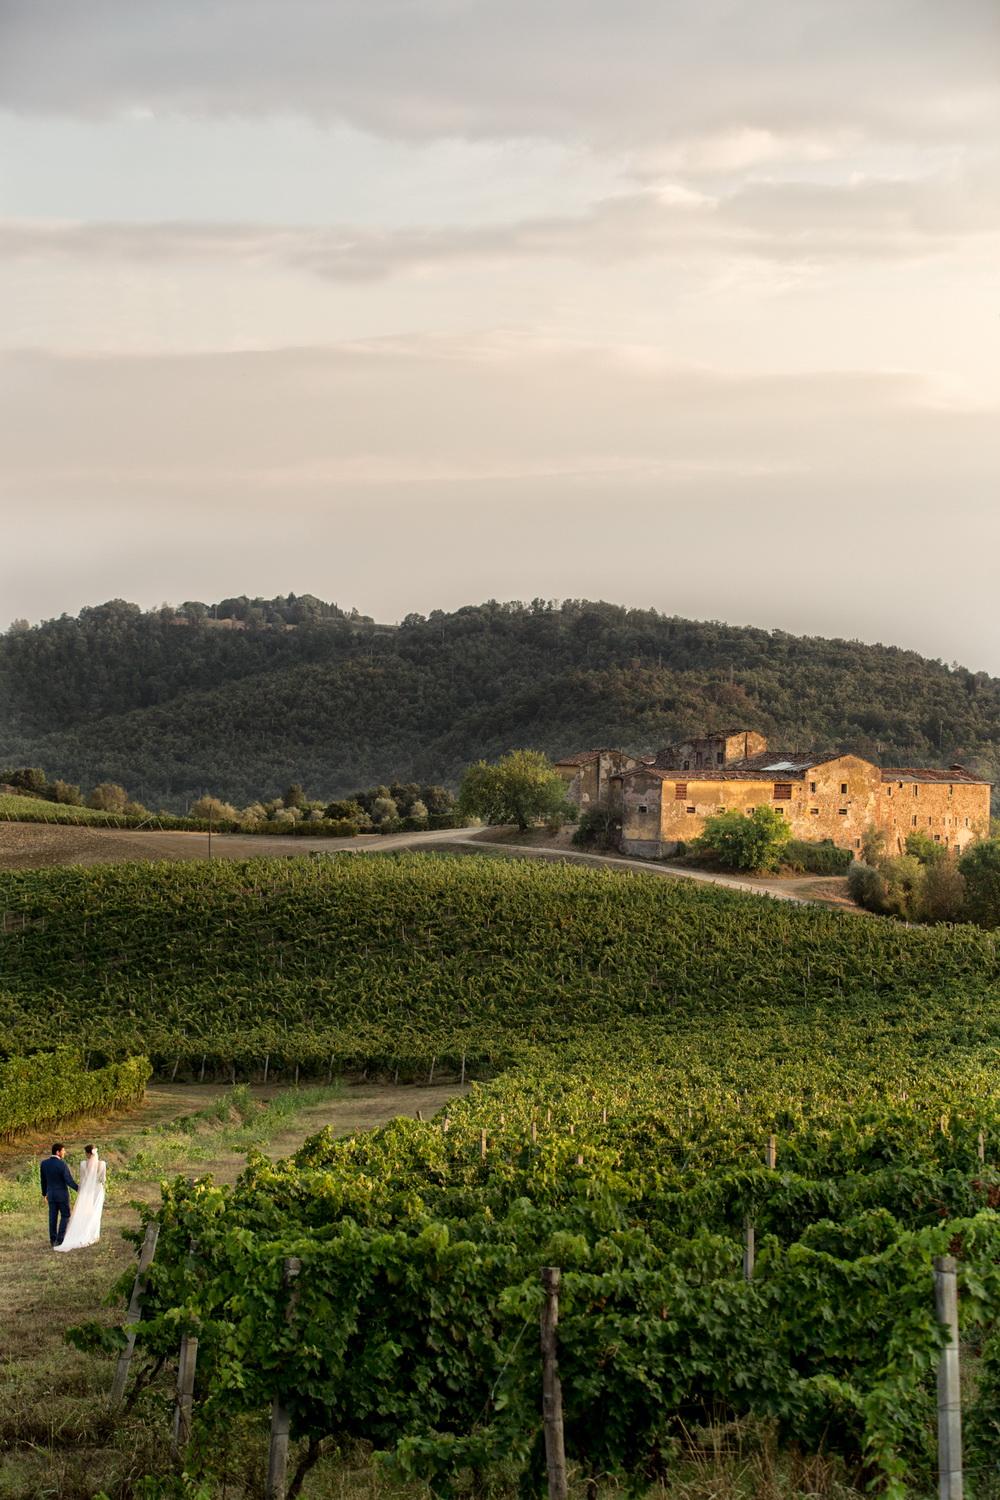 Destination Wedding Toscana | Caroline e Fernando destination wedding na toscana | caroline e fernando Destination Wedding na Toscana | Caroline e Fernando marco zammarchi destination wedding 45